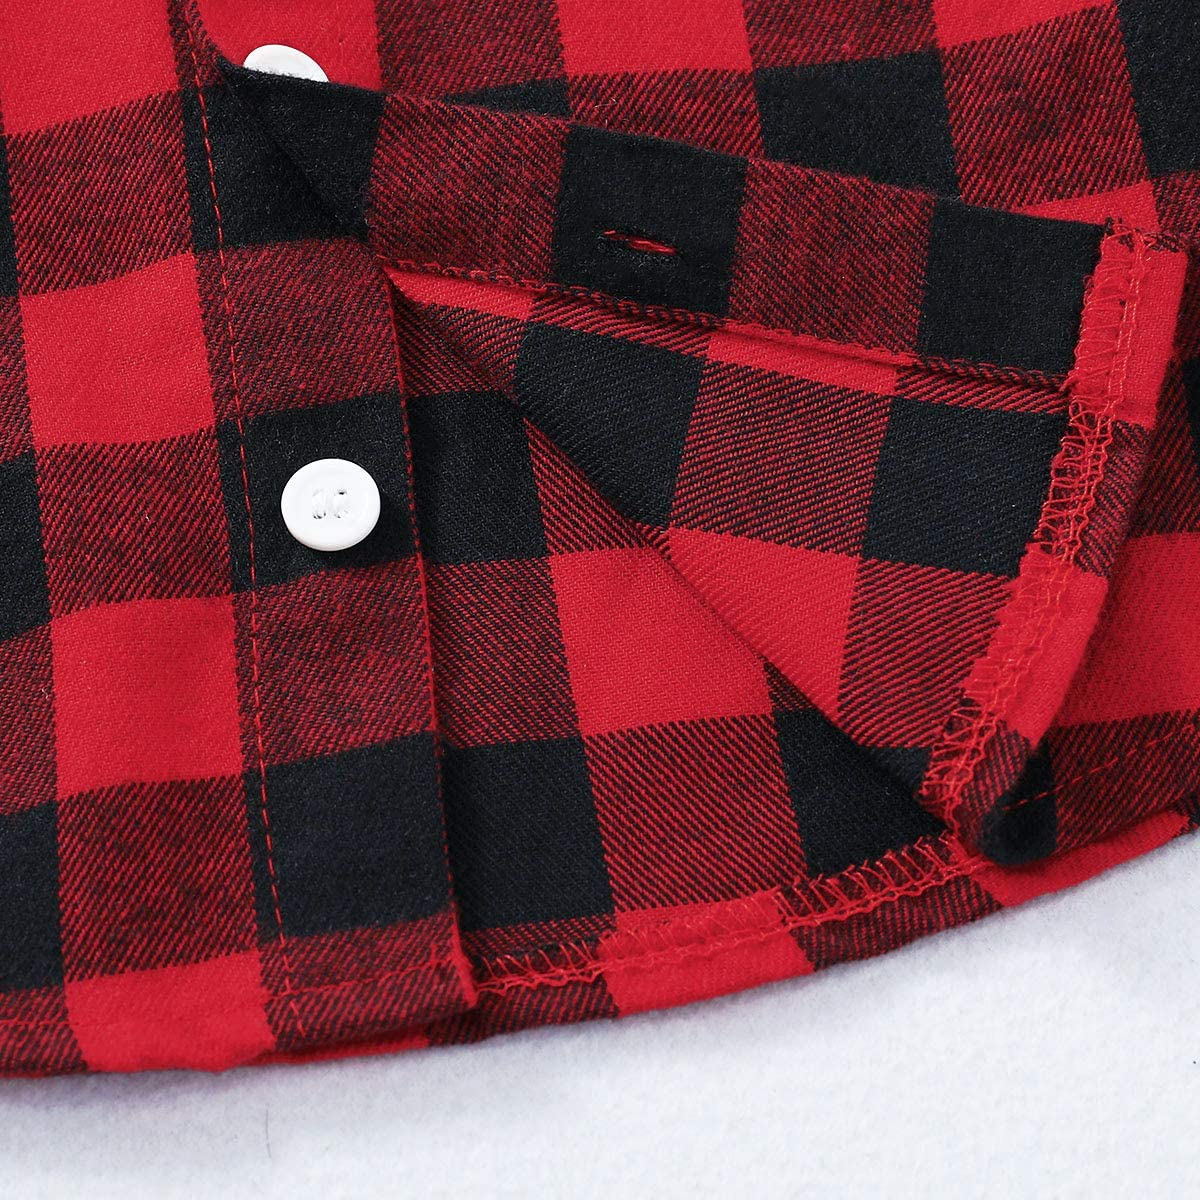 2Pcs Baby Boys Girls Toddler Infant Red Plaid Flannel Shirt Elastic Waist Ripped Holes Soft Jeans Outfit Set